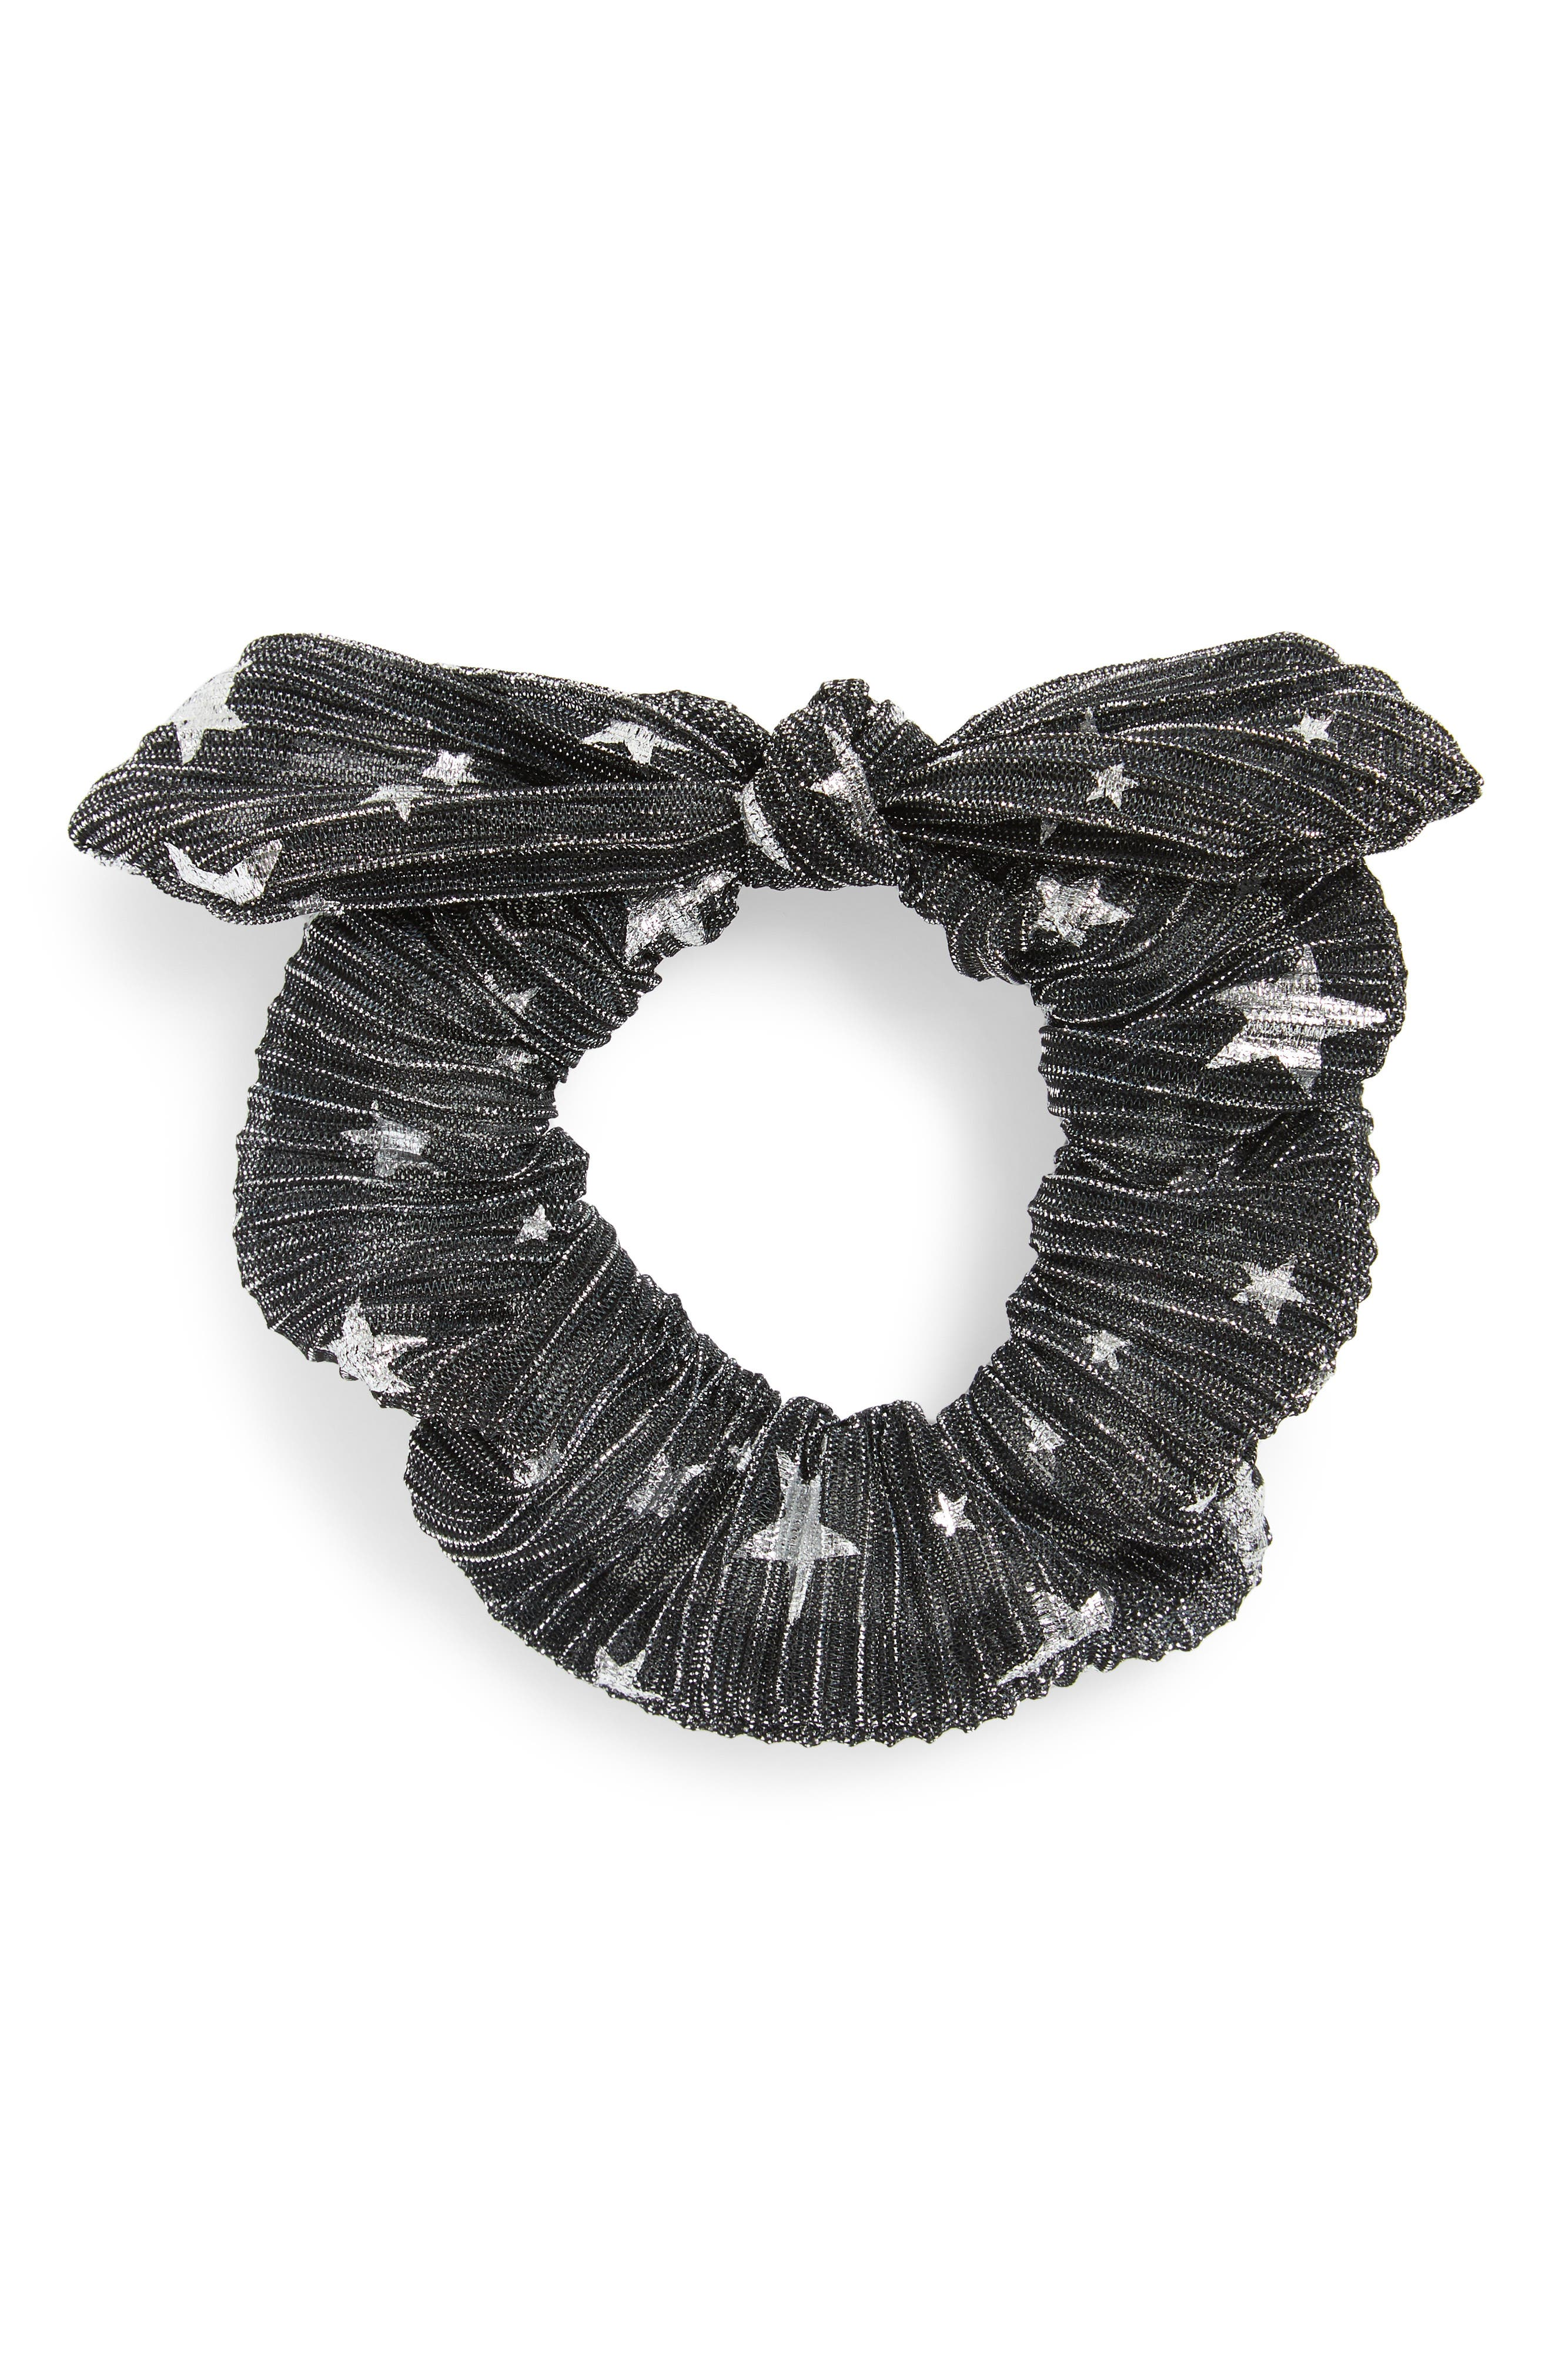 Foil Print Bunny Scrunchie,                         Main,                         color, Black/ Silver